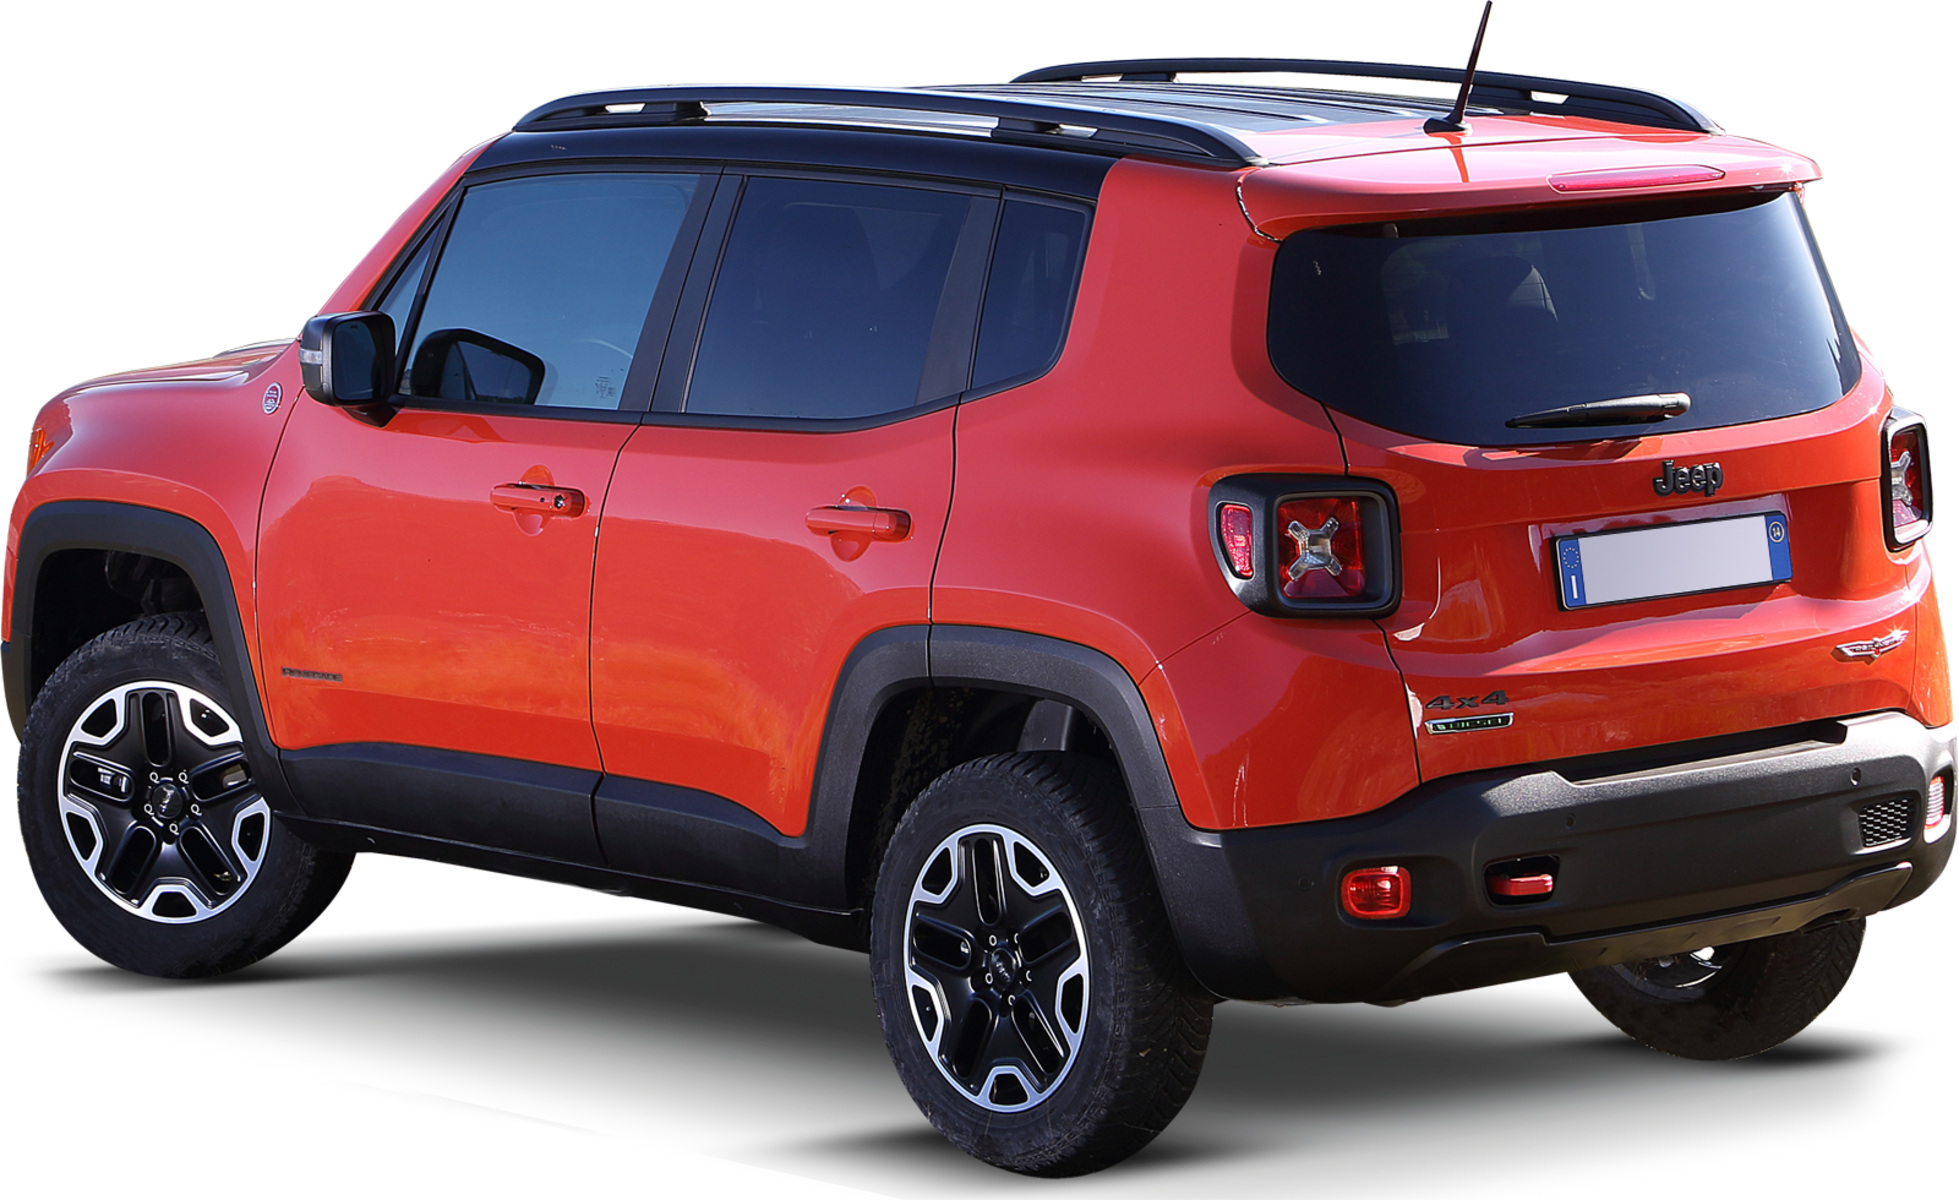 Jeep Renegade likewise Porsche Cayman Gts Review besides New Audi Rs4 Avant also Golf Sportsvan R Line also Range Rover Velar Urban Automotive. on infiniti jeep